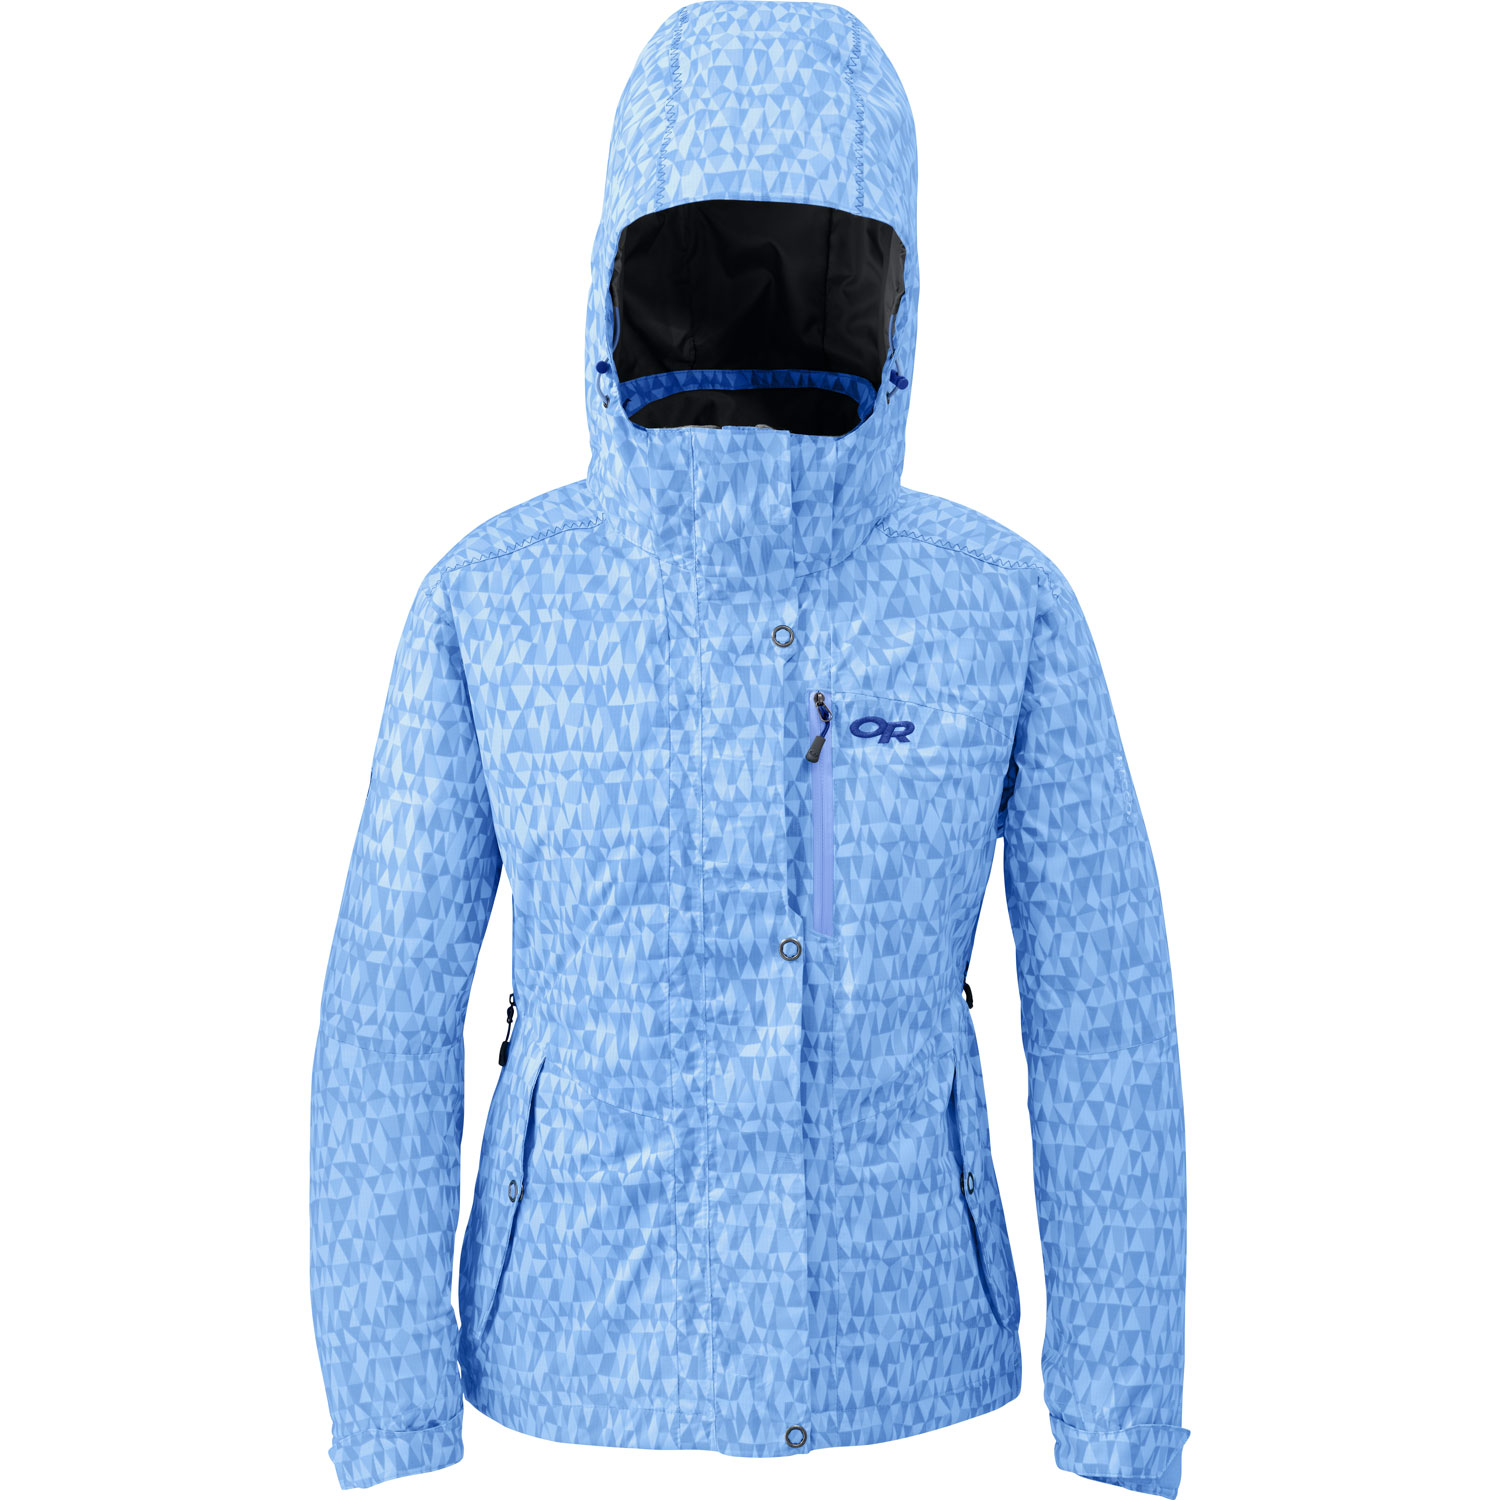 Ski The women's Igneo Jacket provides weatherproof insulation for sidecountry skiing in cold winter conditions; breathability and venting aid when body temperature escalates on the boot pack to the top.Key Features of the Outdoor Research Igneo Ski Jacket: 100% Nylon, 2-layer 70D PerTex Shield fabric; 100% Polyester reversed brushed tricot lining Waterproof Breathable Thermore insulation; 60g front/ arms, 40g back/ under arms Integrated RECCO reflector Removable powder skirt with LockDown technology Fully seam taped Adjustable, removable hood fits over a helmet Double-sliding pit zippers for ventilation Inner lift pass pocket with drawcord key-clip attachment ThumbDrive hook/ loop cuff closures (M) 31.1 oz/ 881g Relaxed Fit Center Back Length: 27in/ 69cm - $210.95